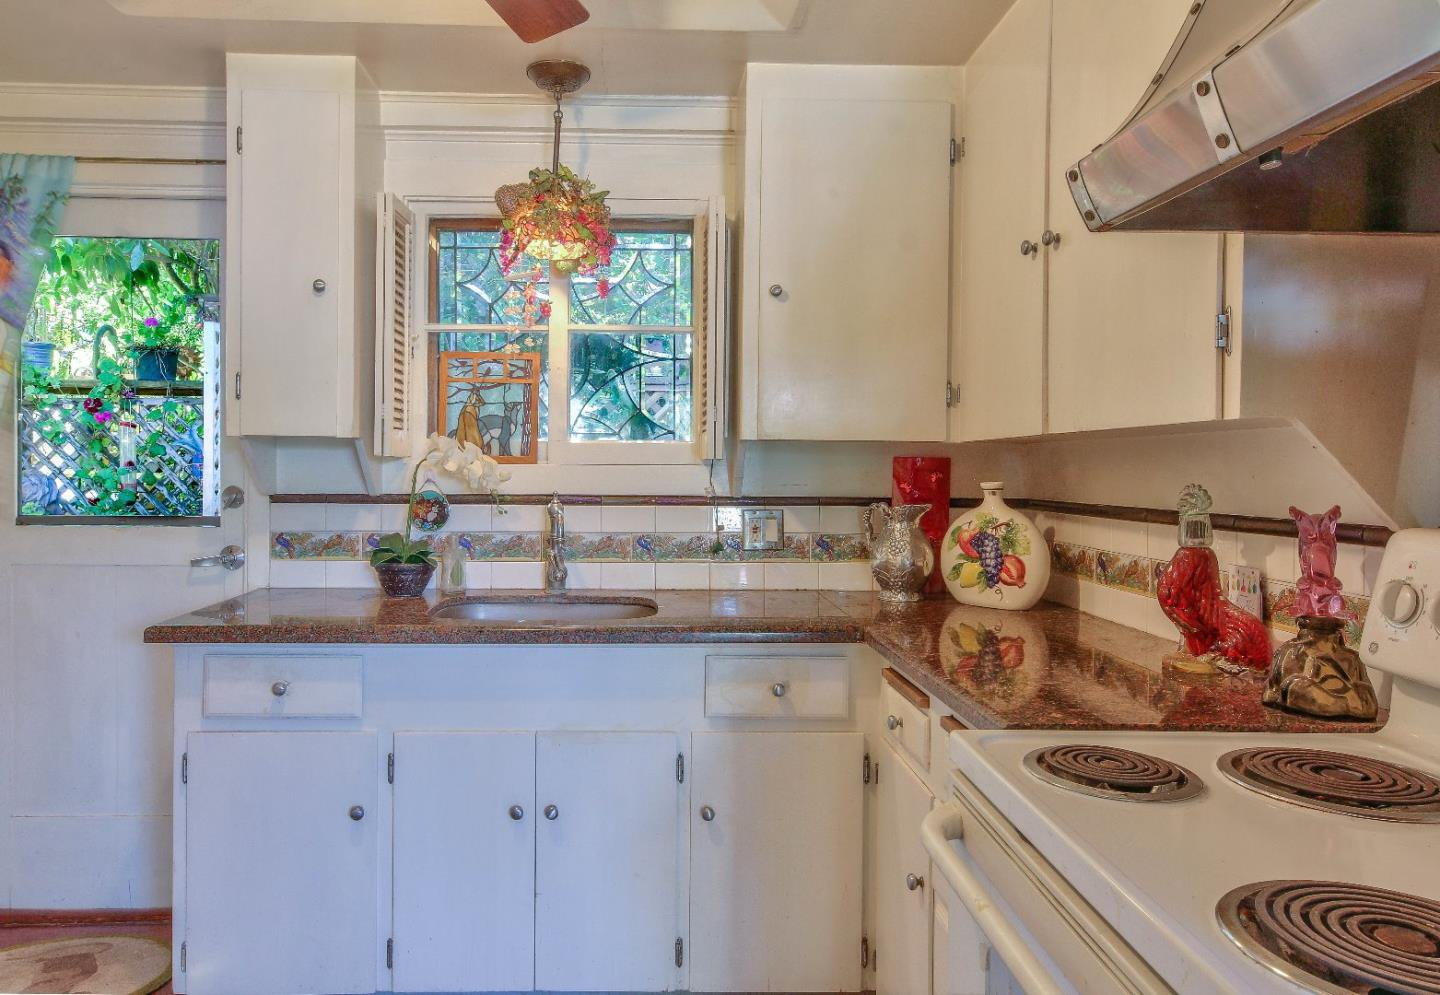 Kitchen - Cottage in Carmel for sale